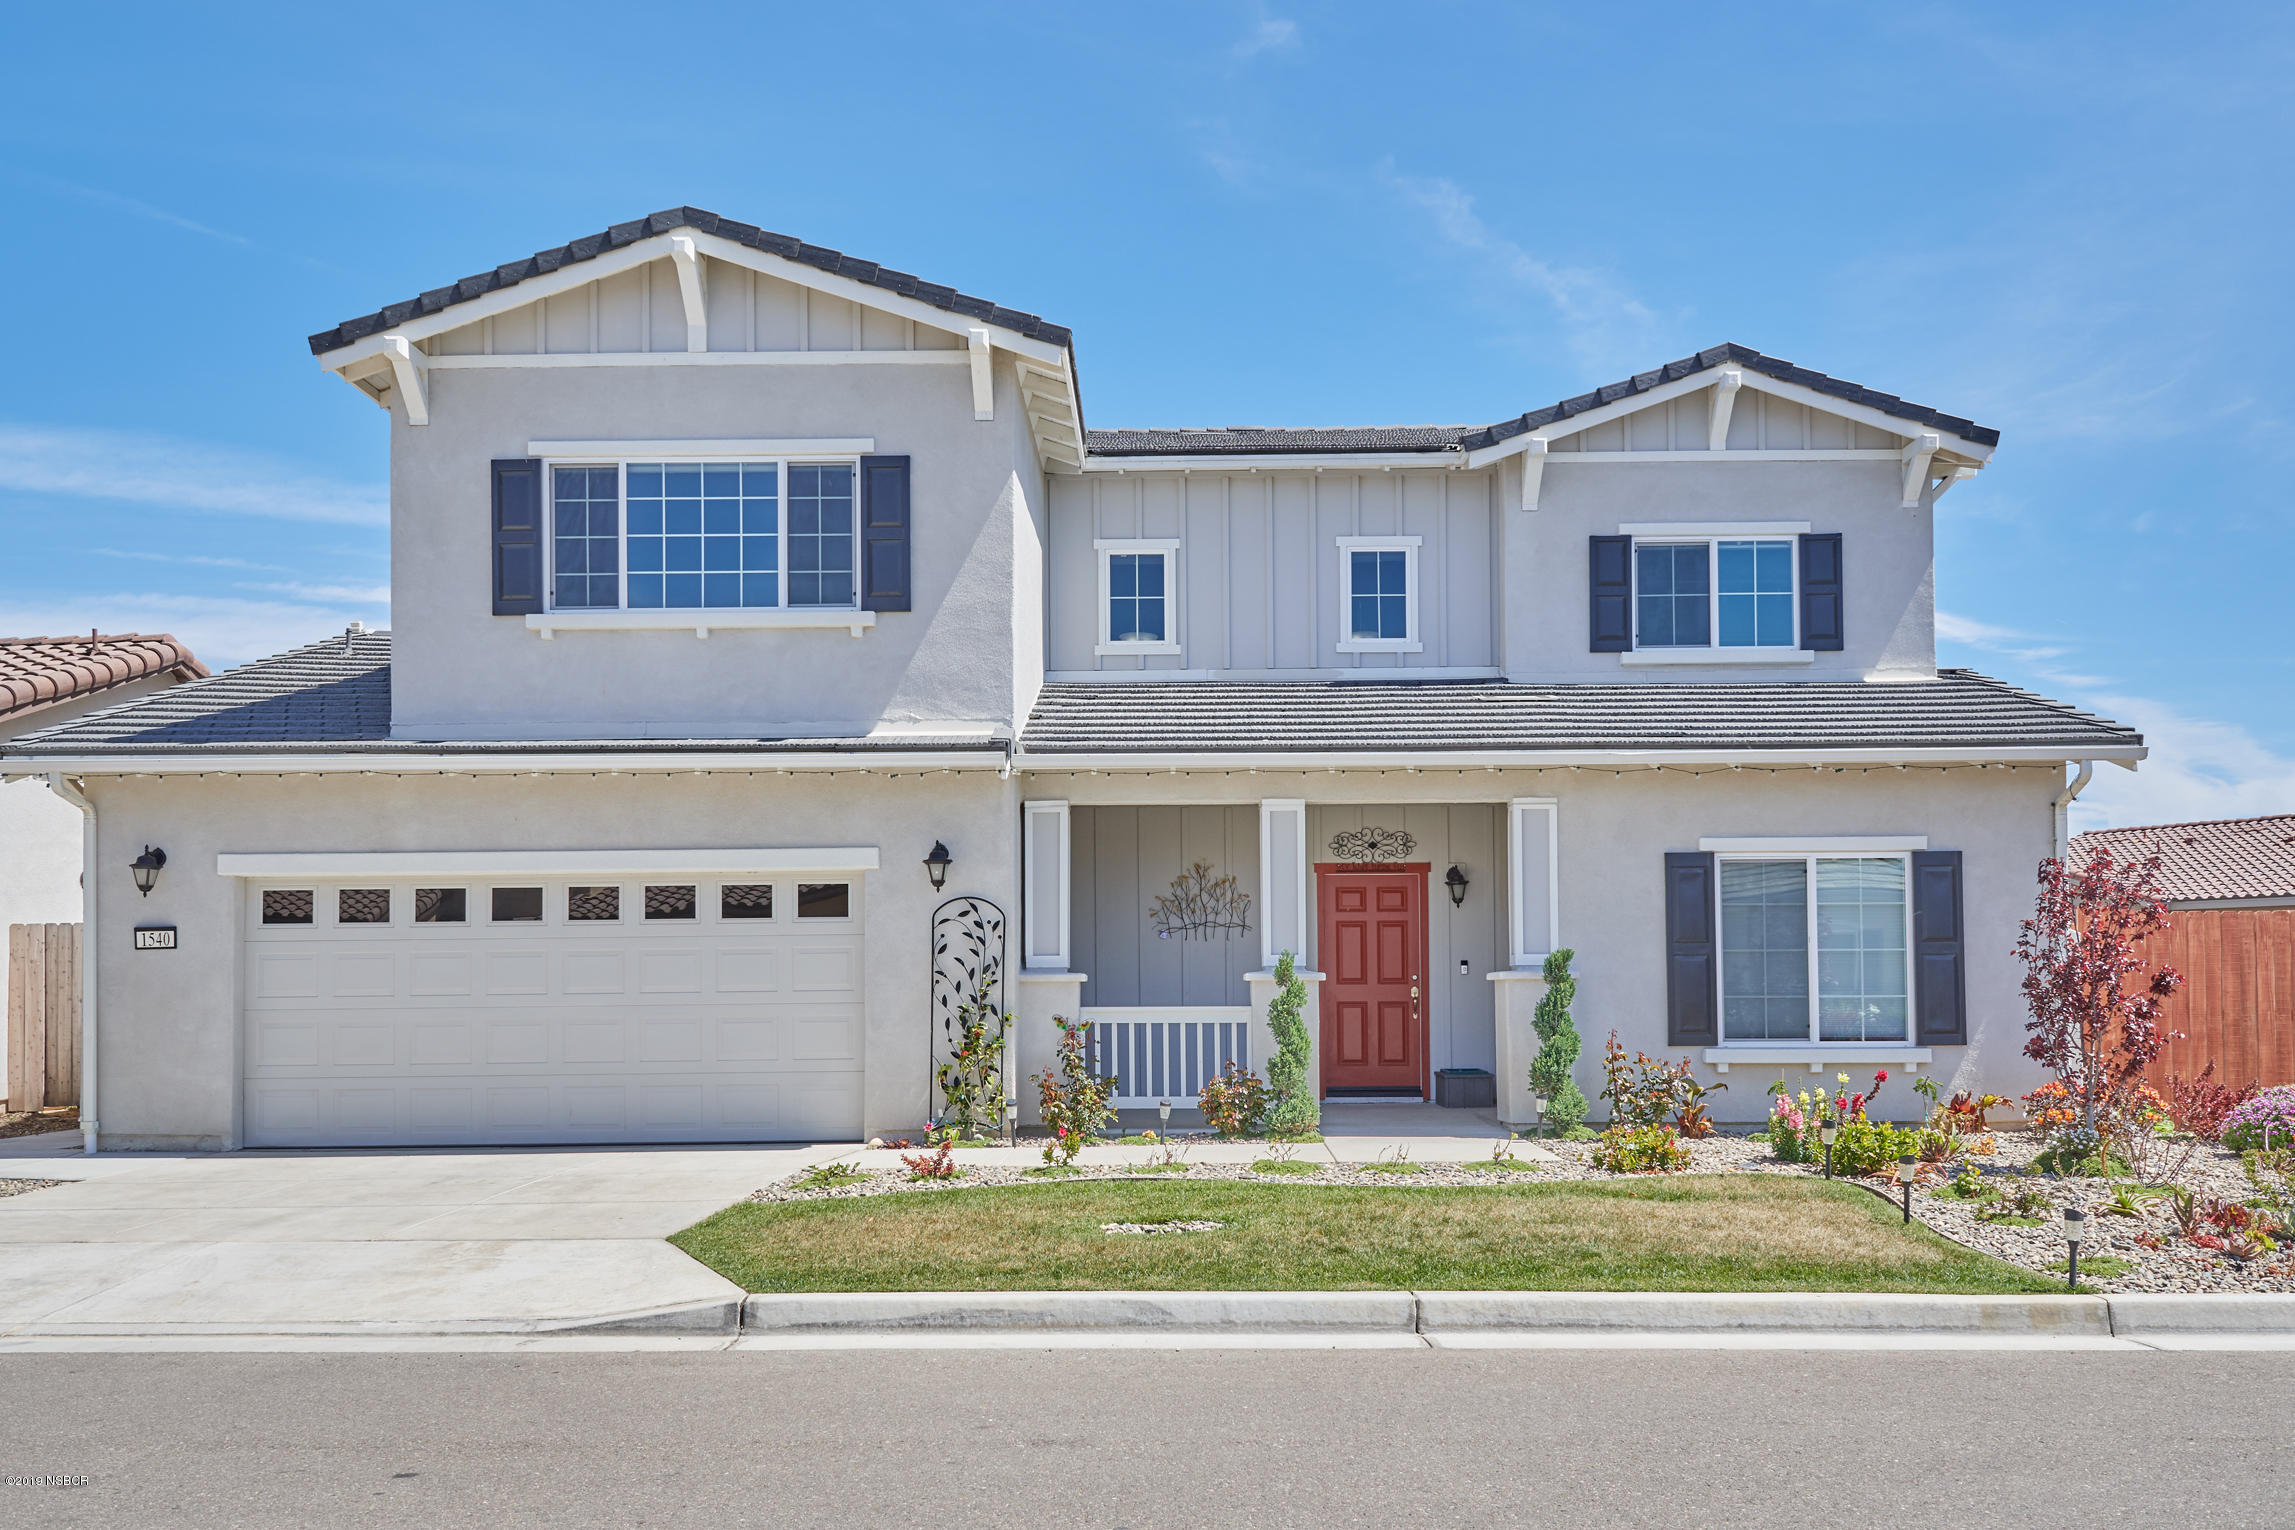 1540 S Syracuse Lane, Santa Maria, California